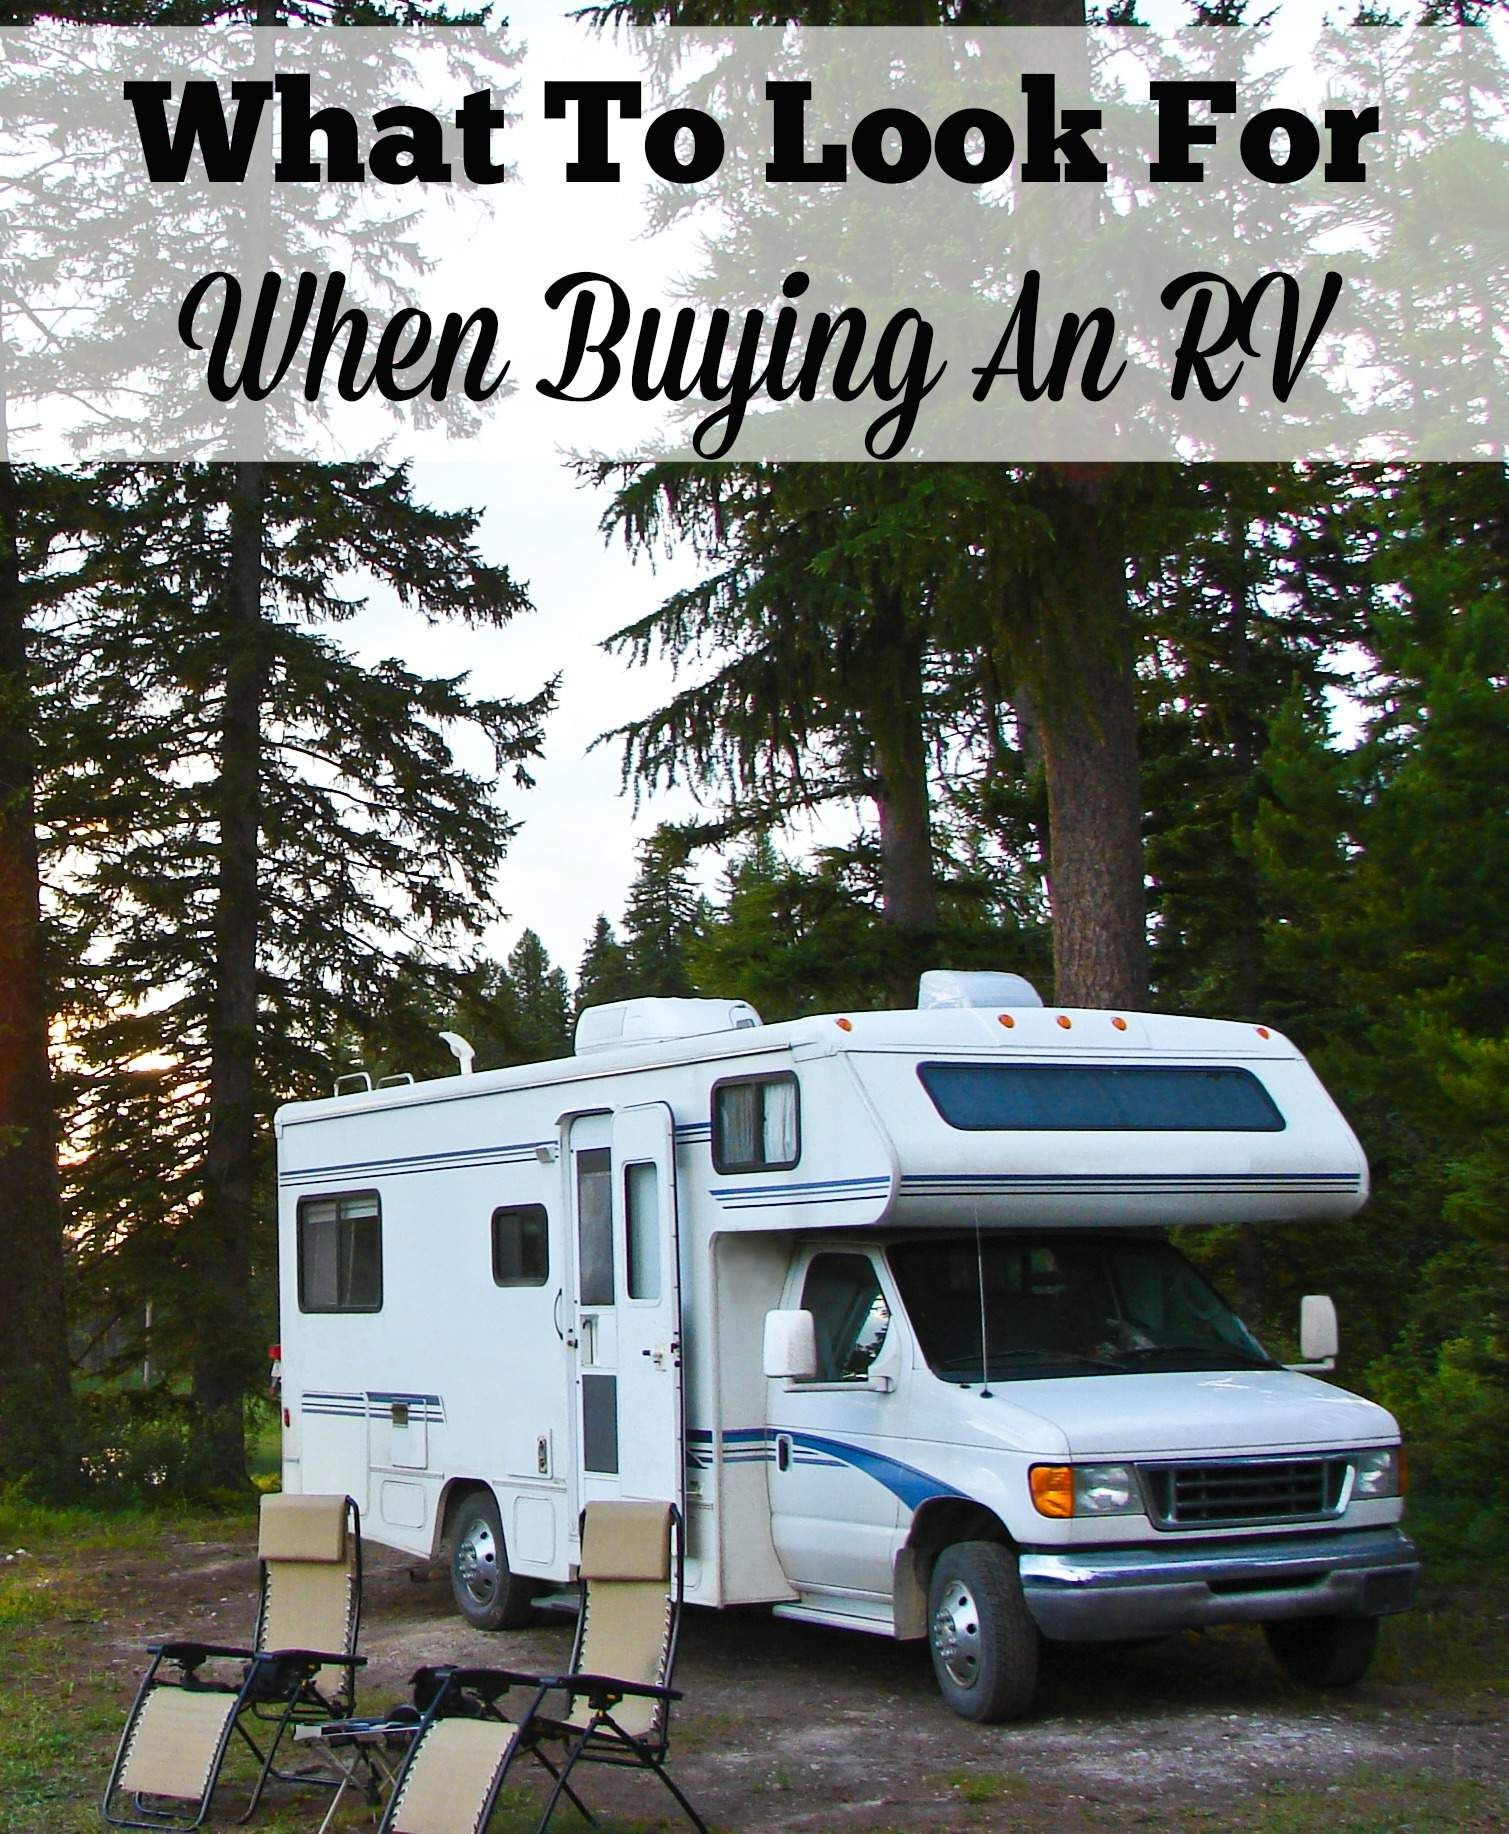 What To Look For When Buying An RV   Buying an rv ...